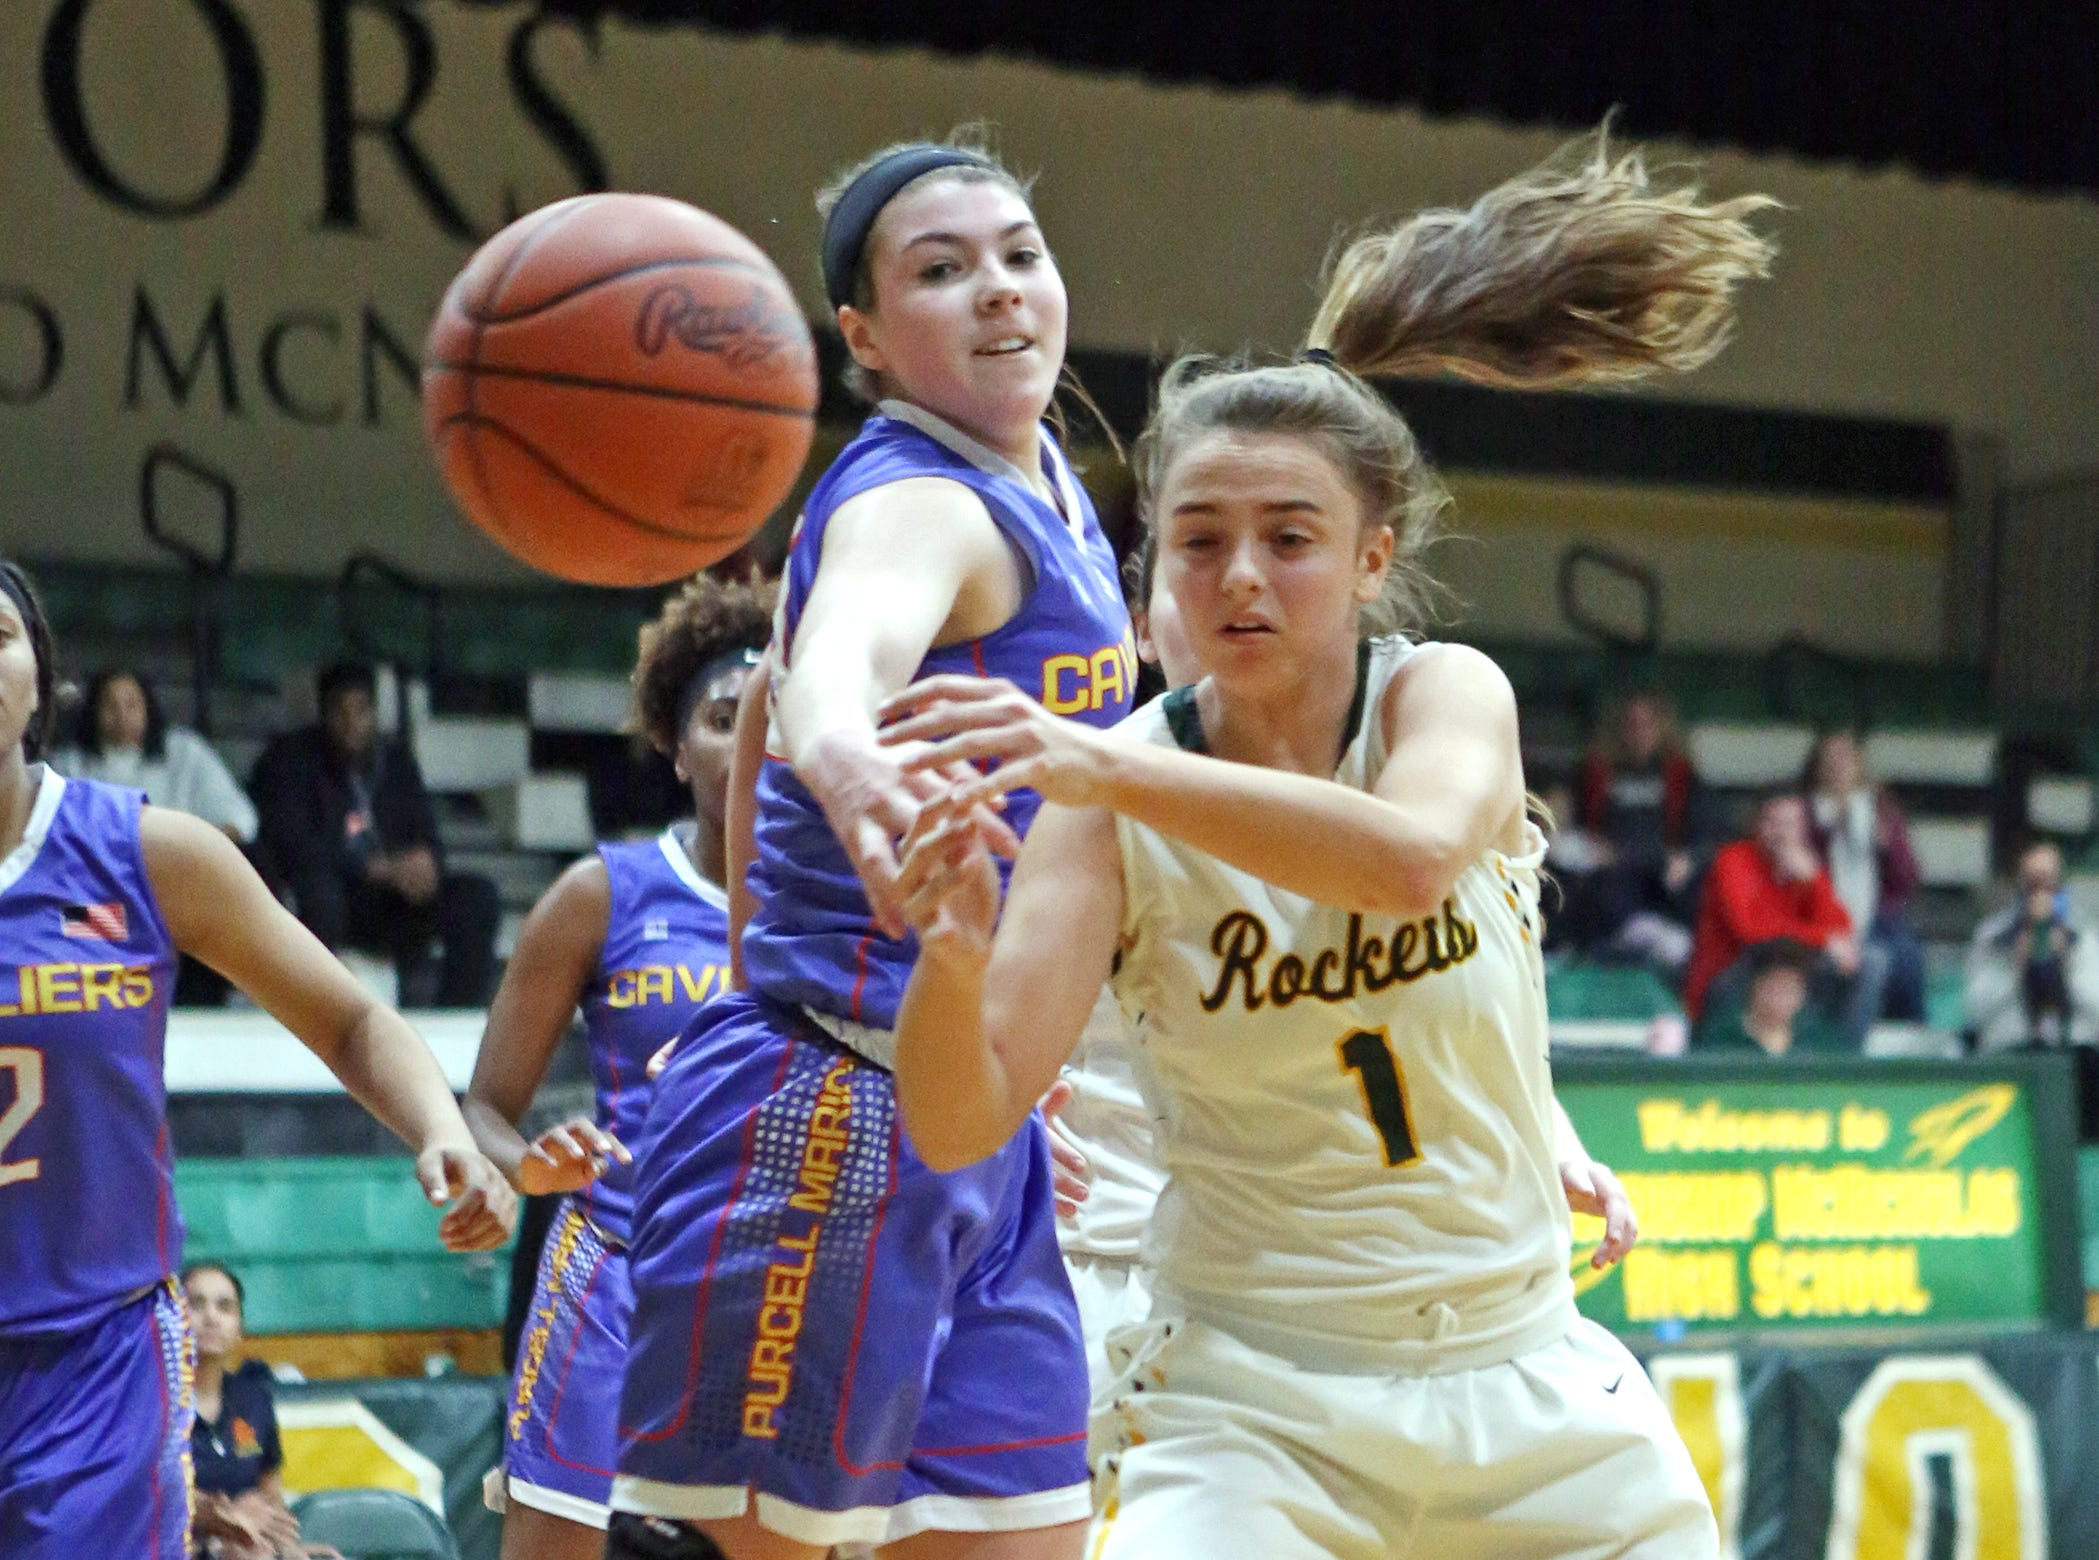 McNicholas guard Emma McSwigan tries to get control of the ball. McNicholas upset Purcell 51-50.